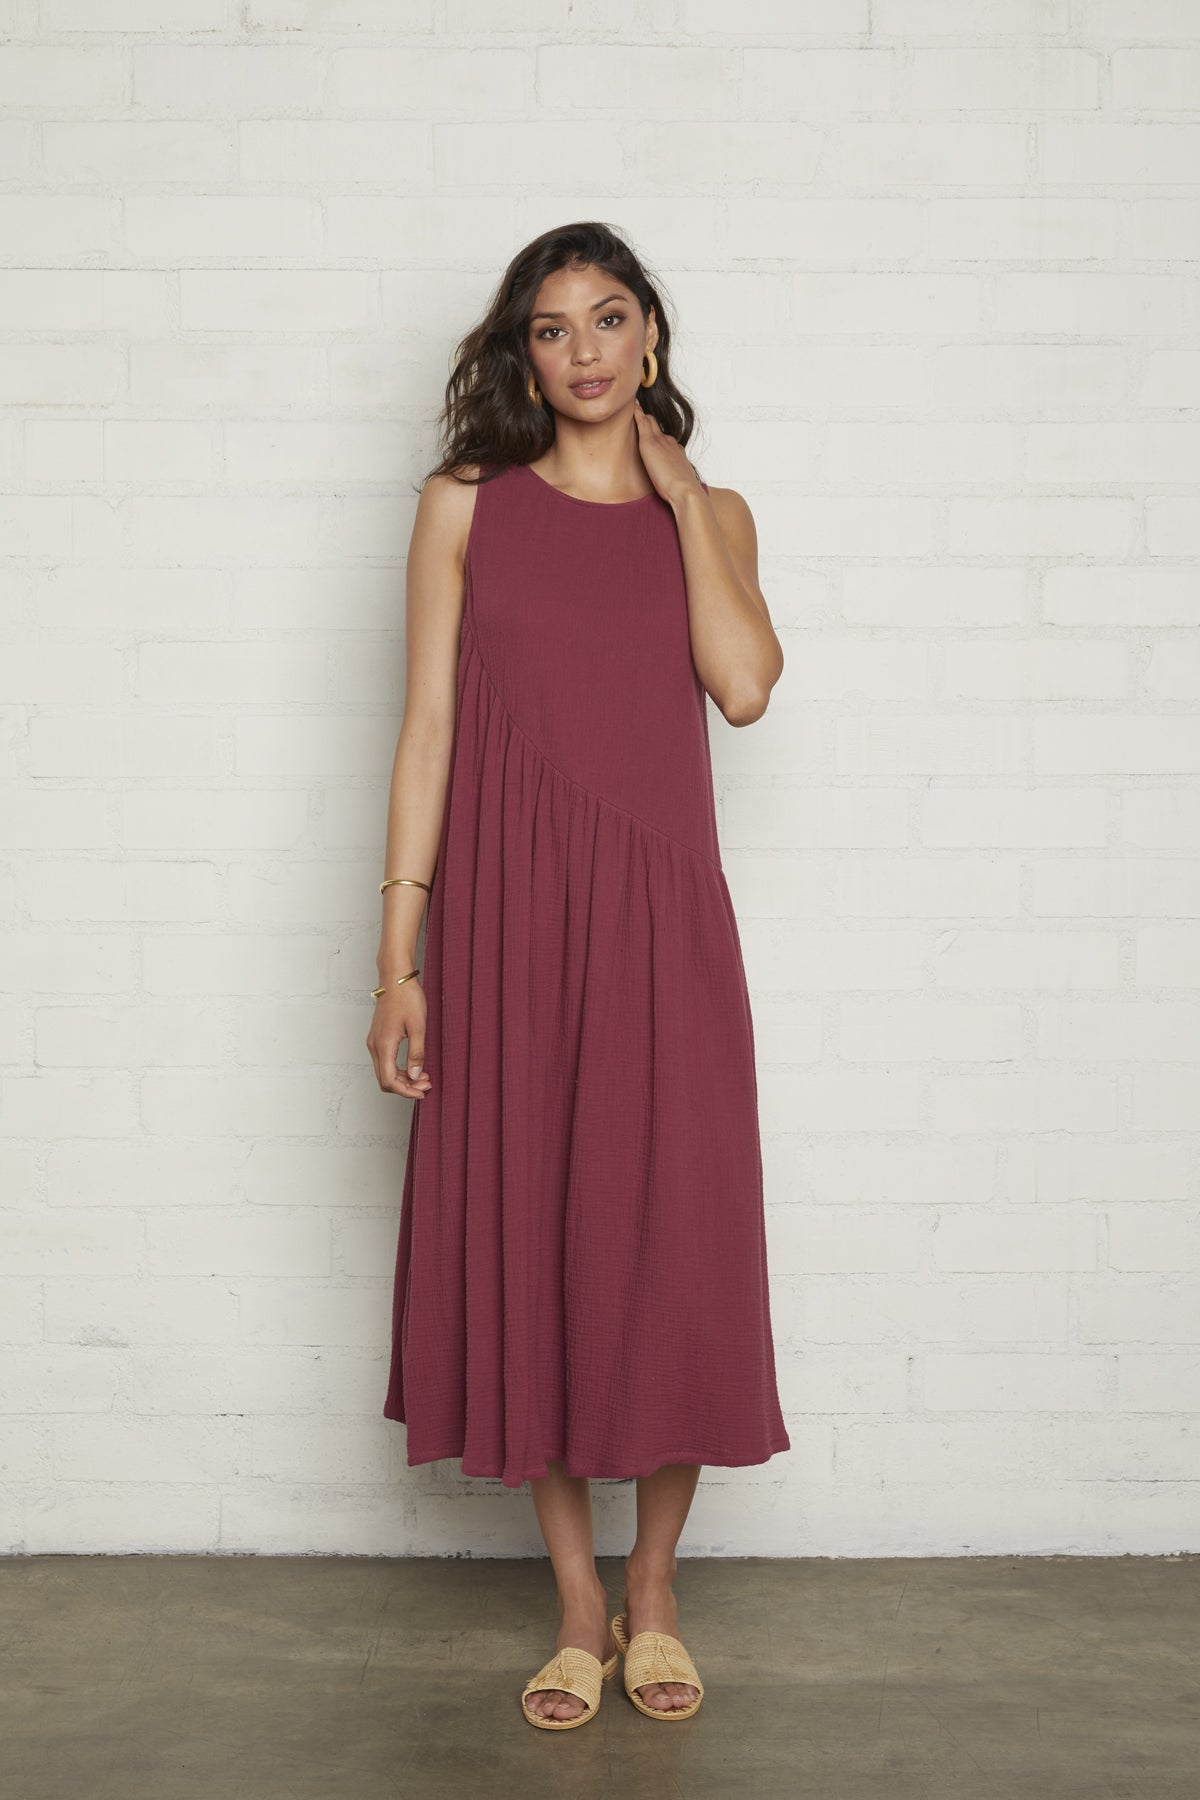 Gauze Janie Dress - Raspberry